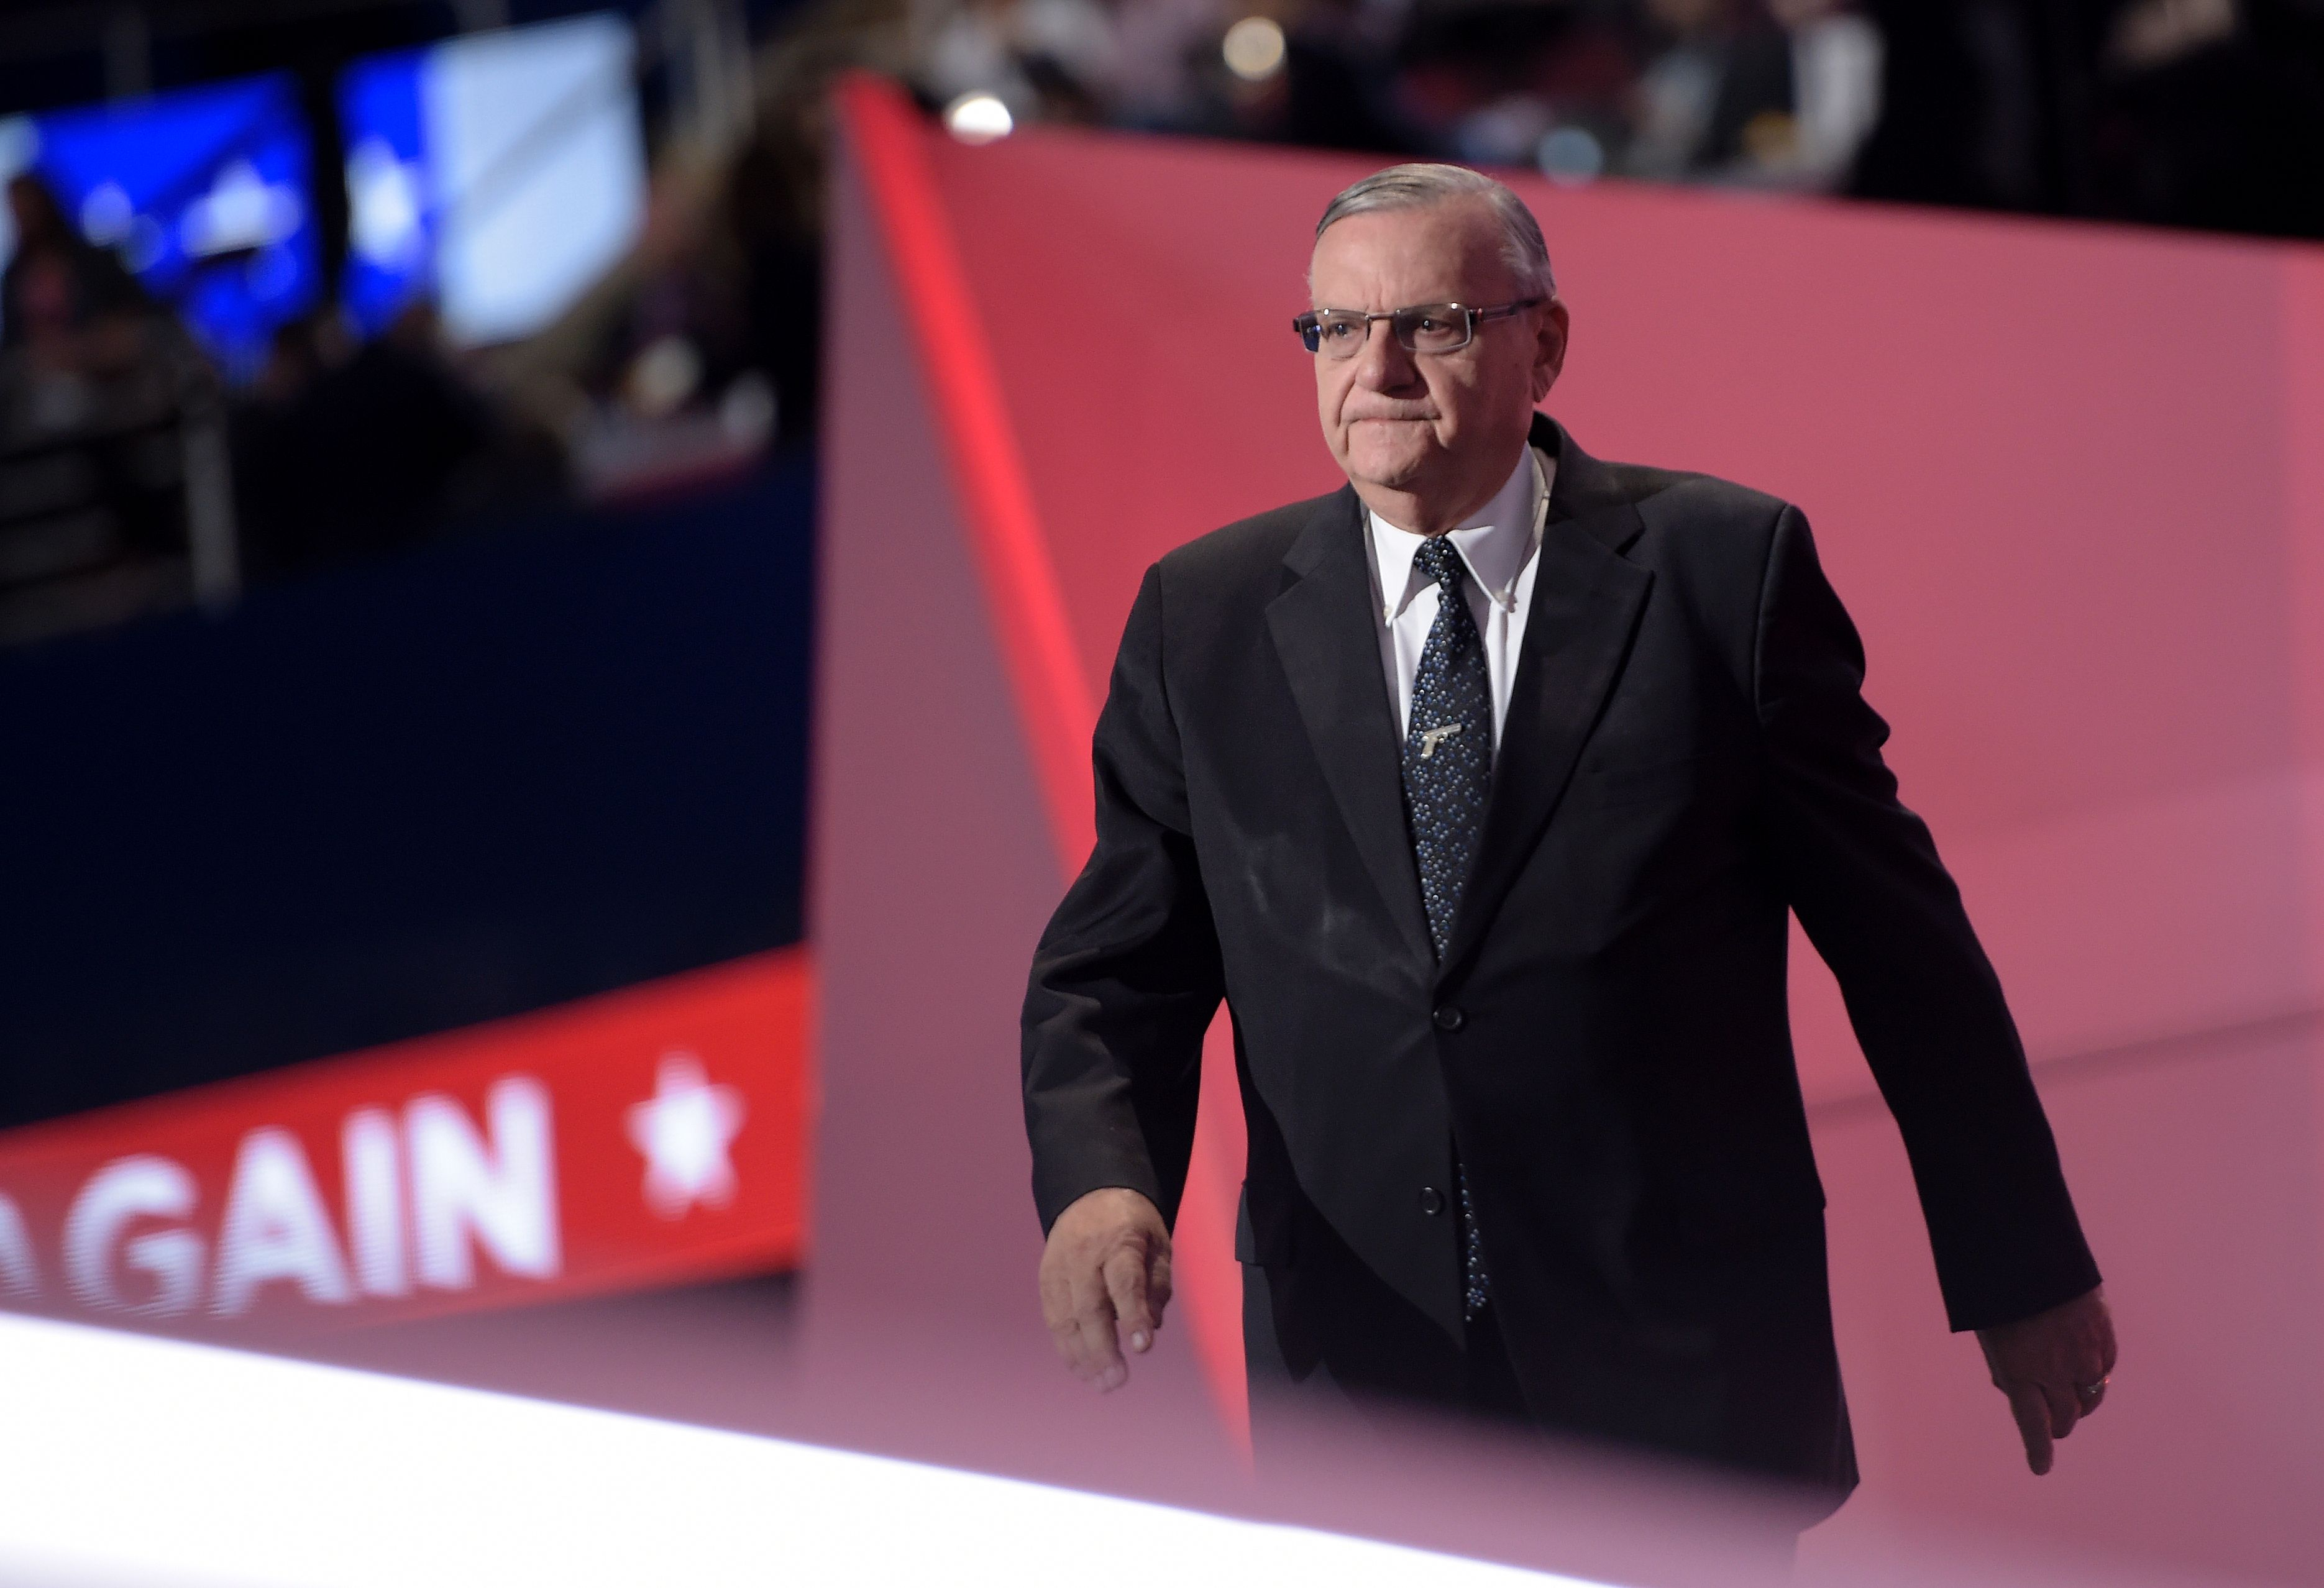 Sheriff Joe Arpaio arrives to speak at the Republican National Convention in Cleveland, Ohio on July 21, 2016. (Brendan Smialowski/AFP/Getty Images)